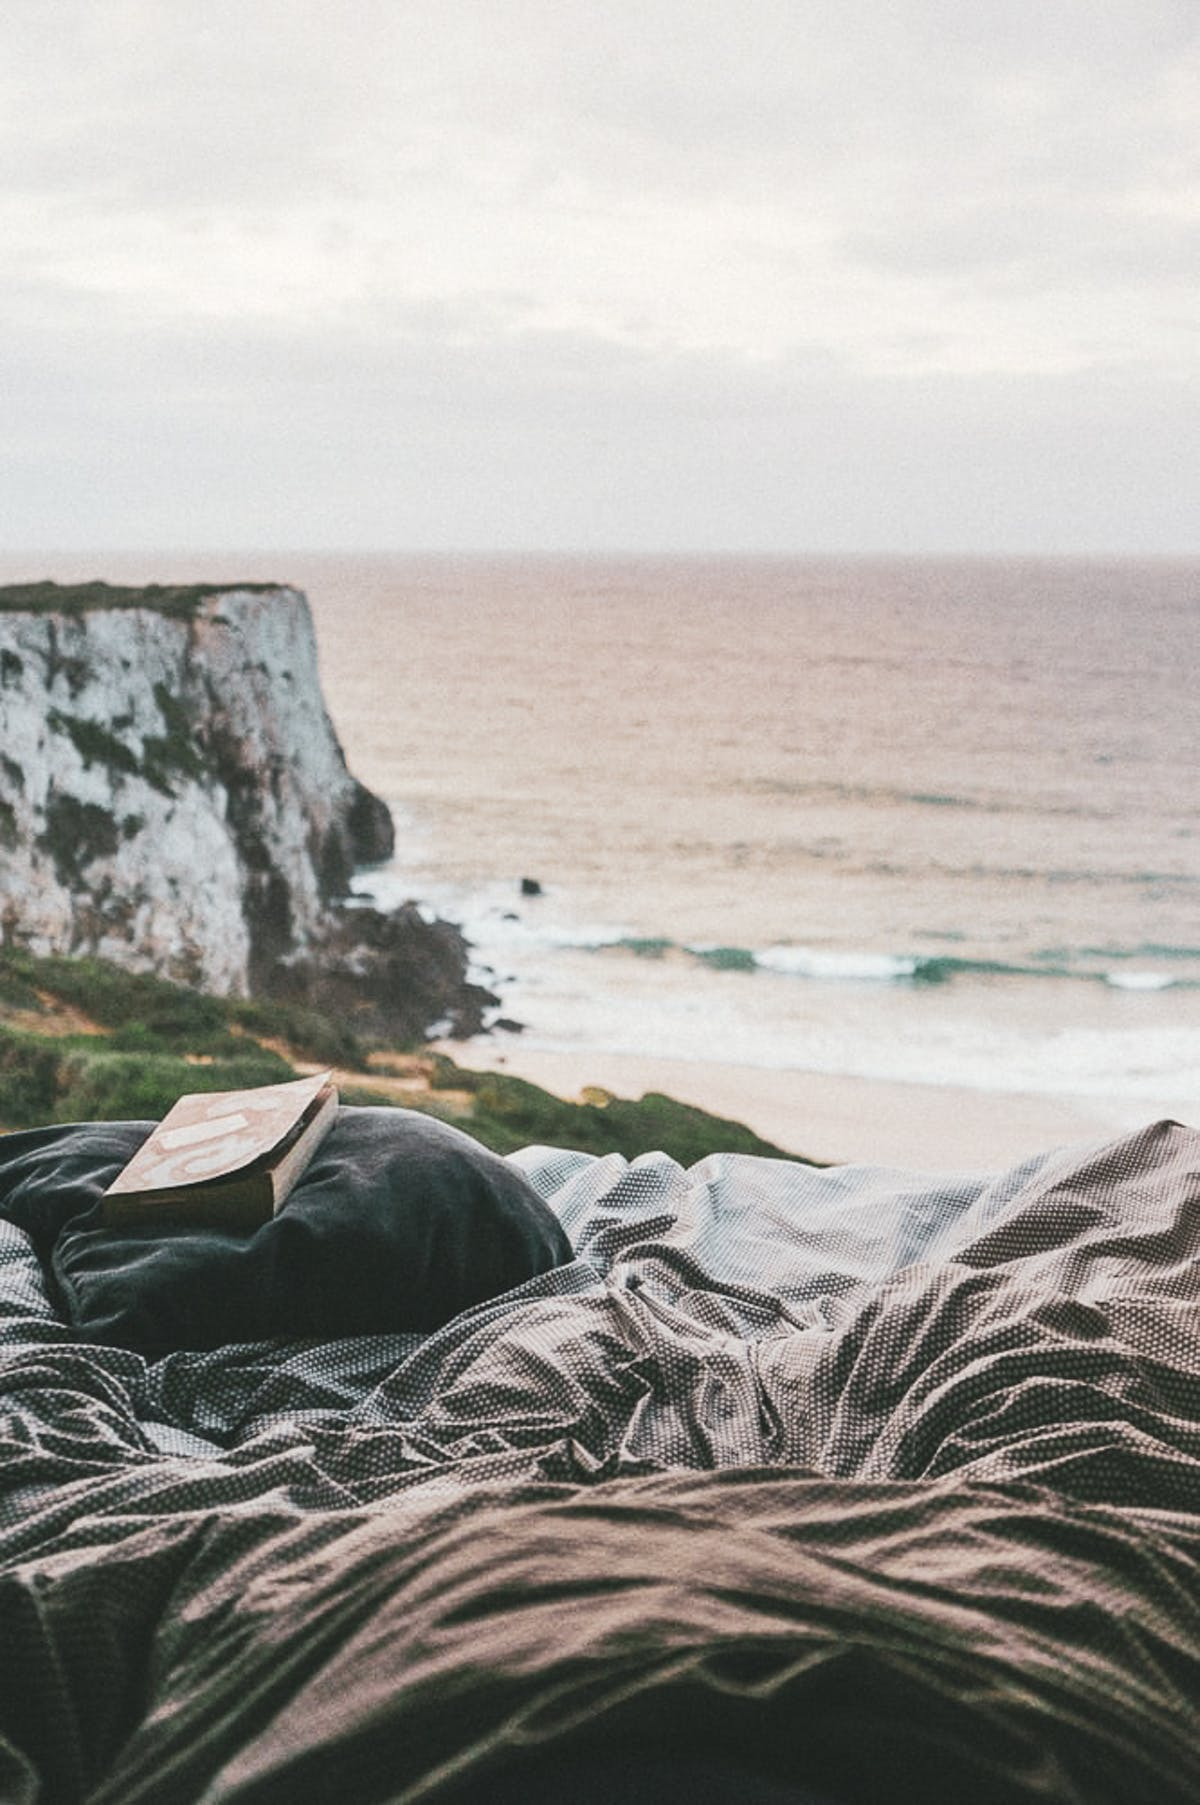 Book on a bed facing a cliff overlooking the sea